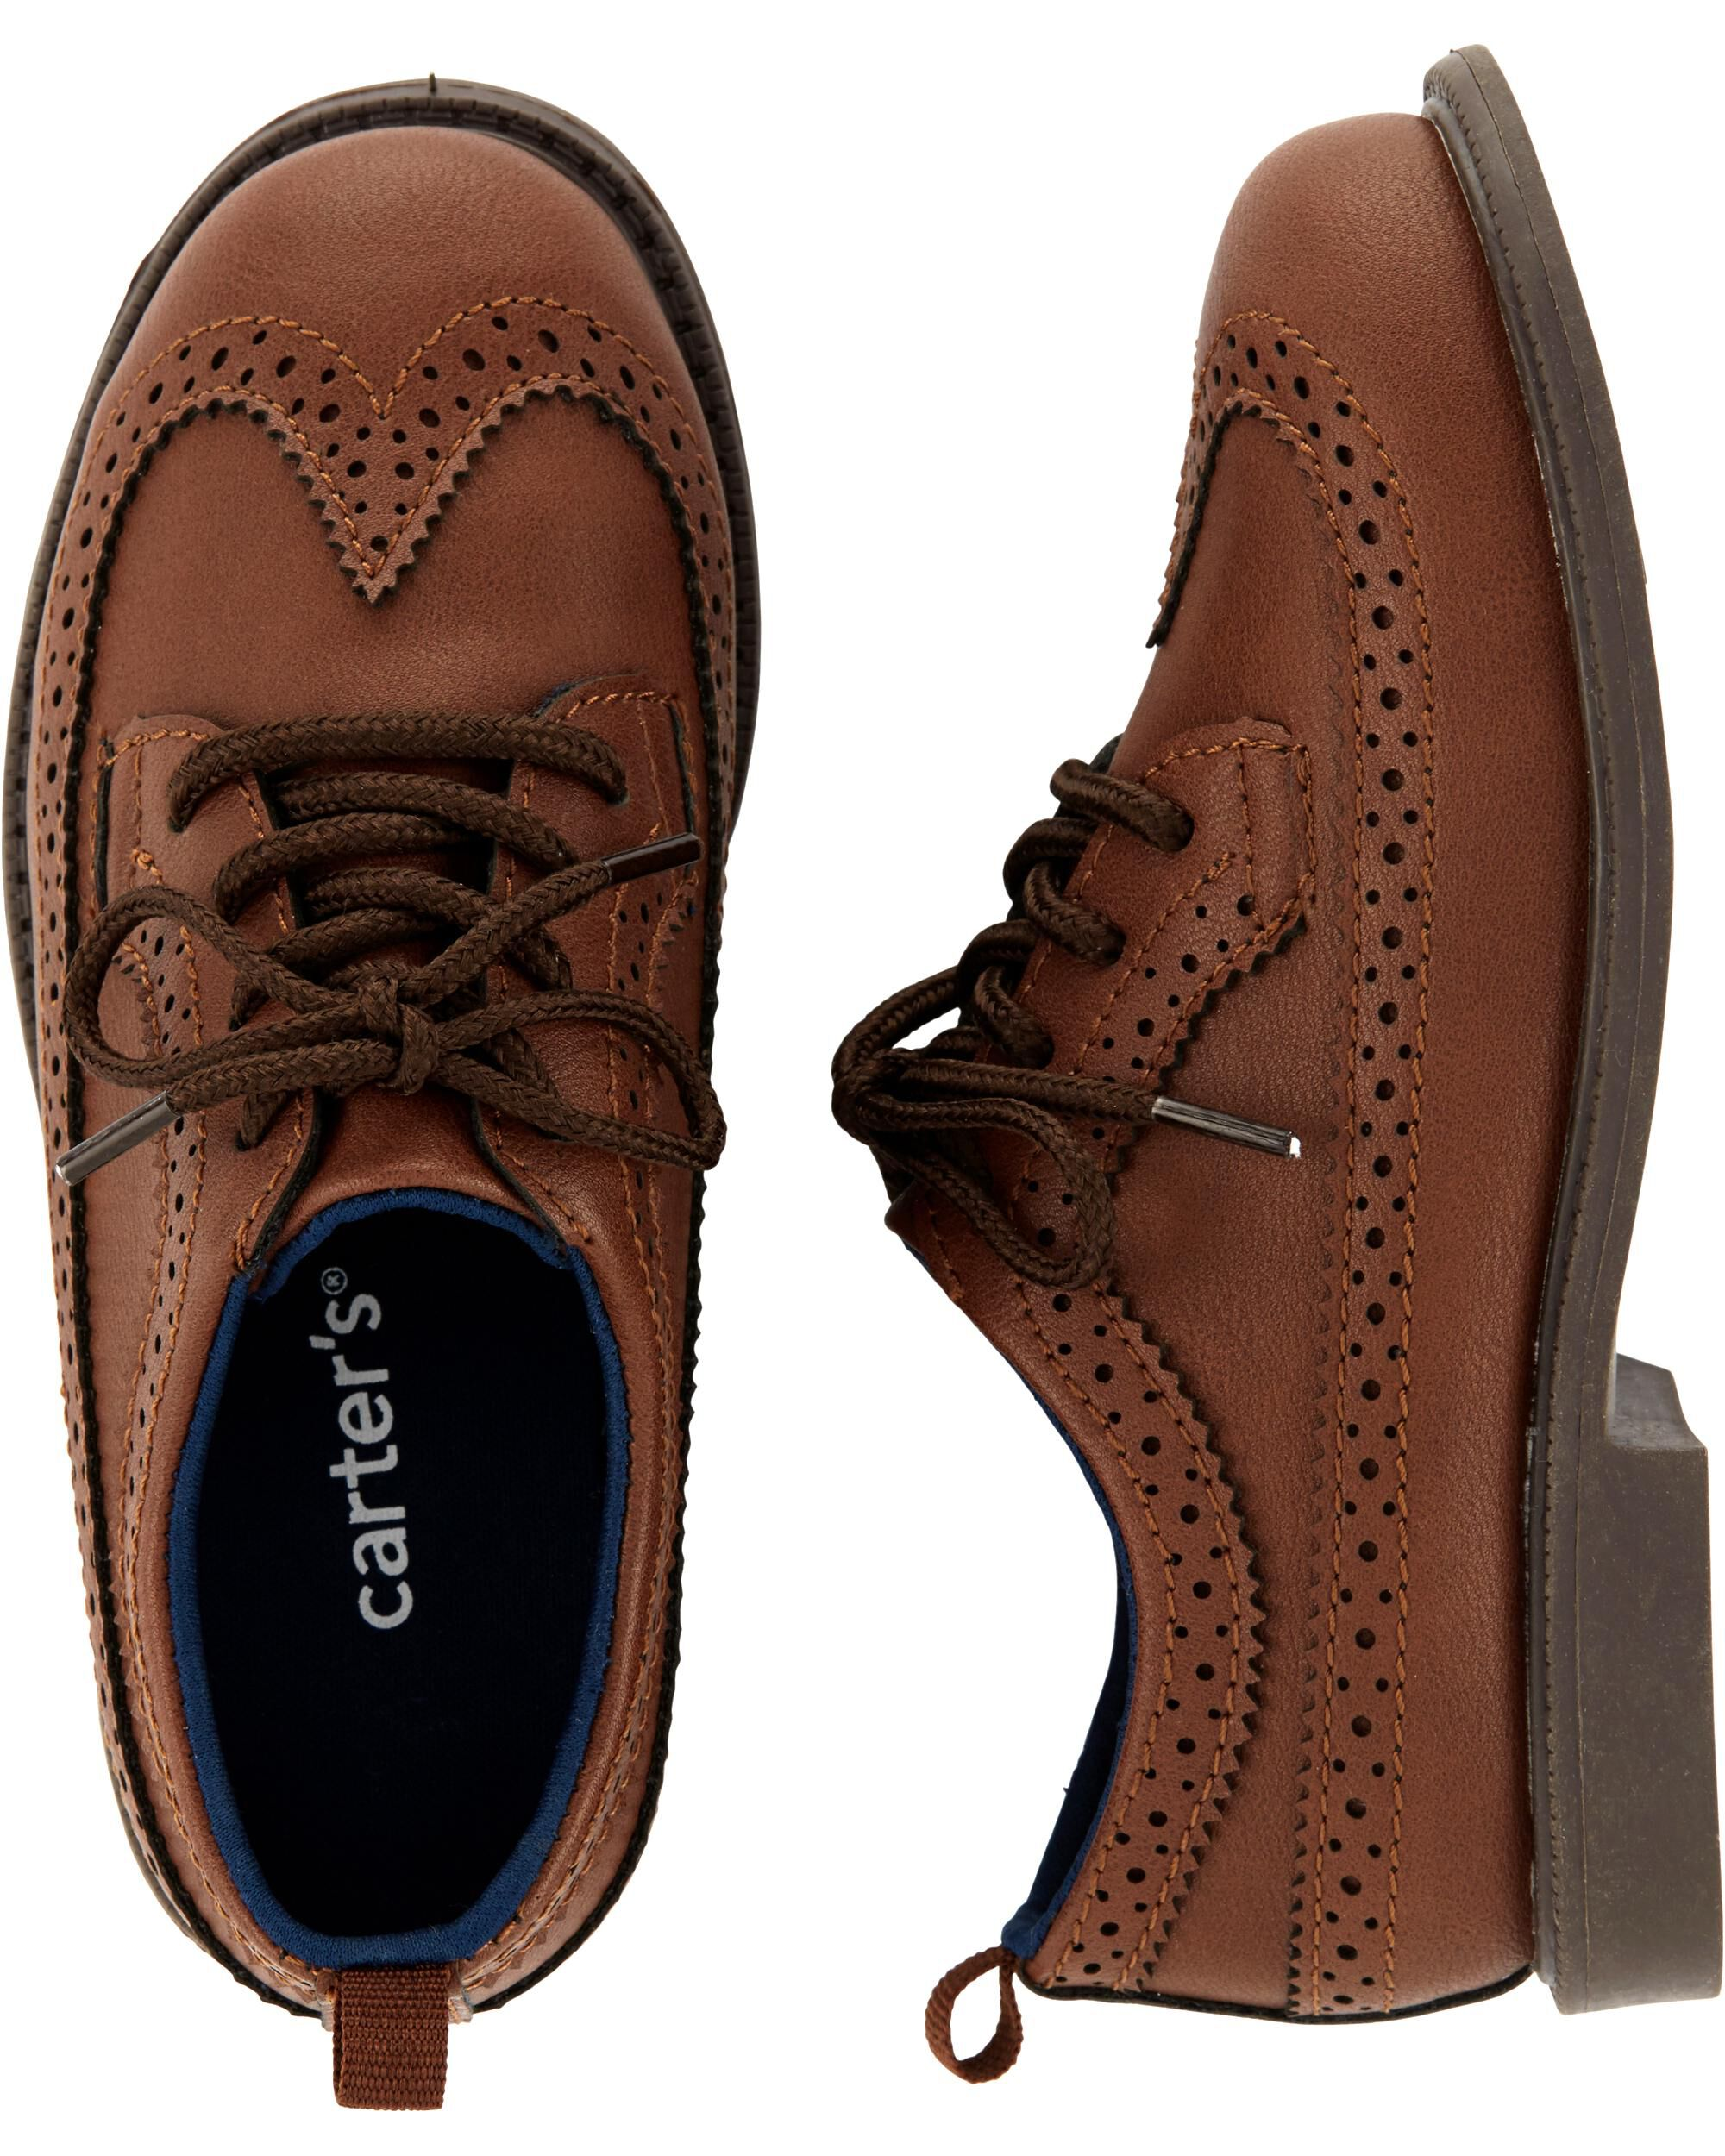 c0914ab449 Carter's Oxford Dress Shoes